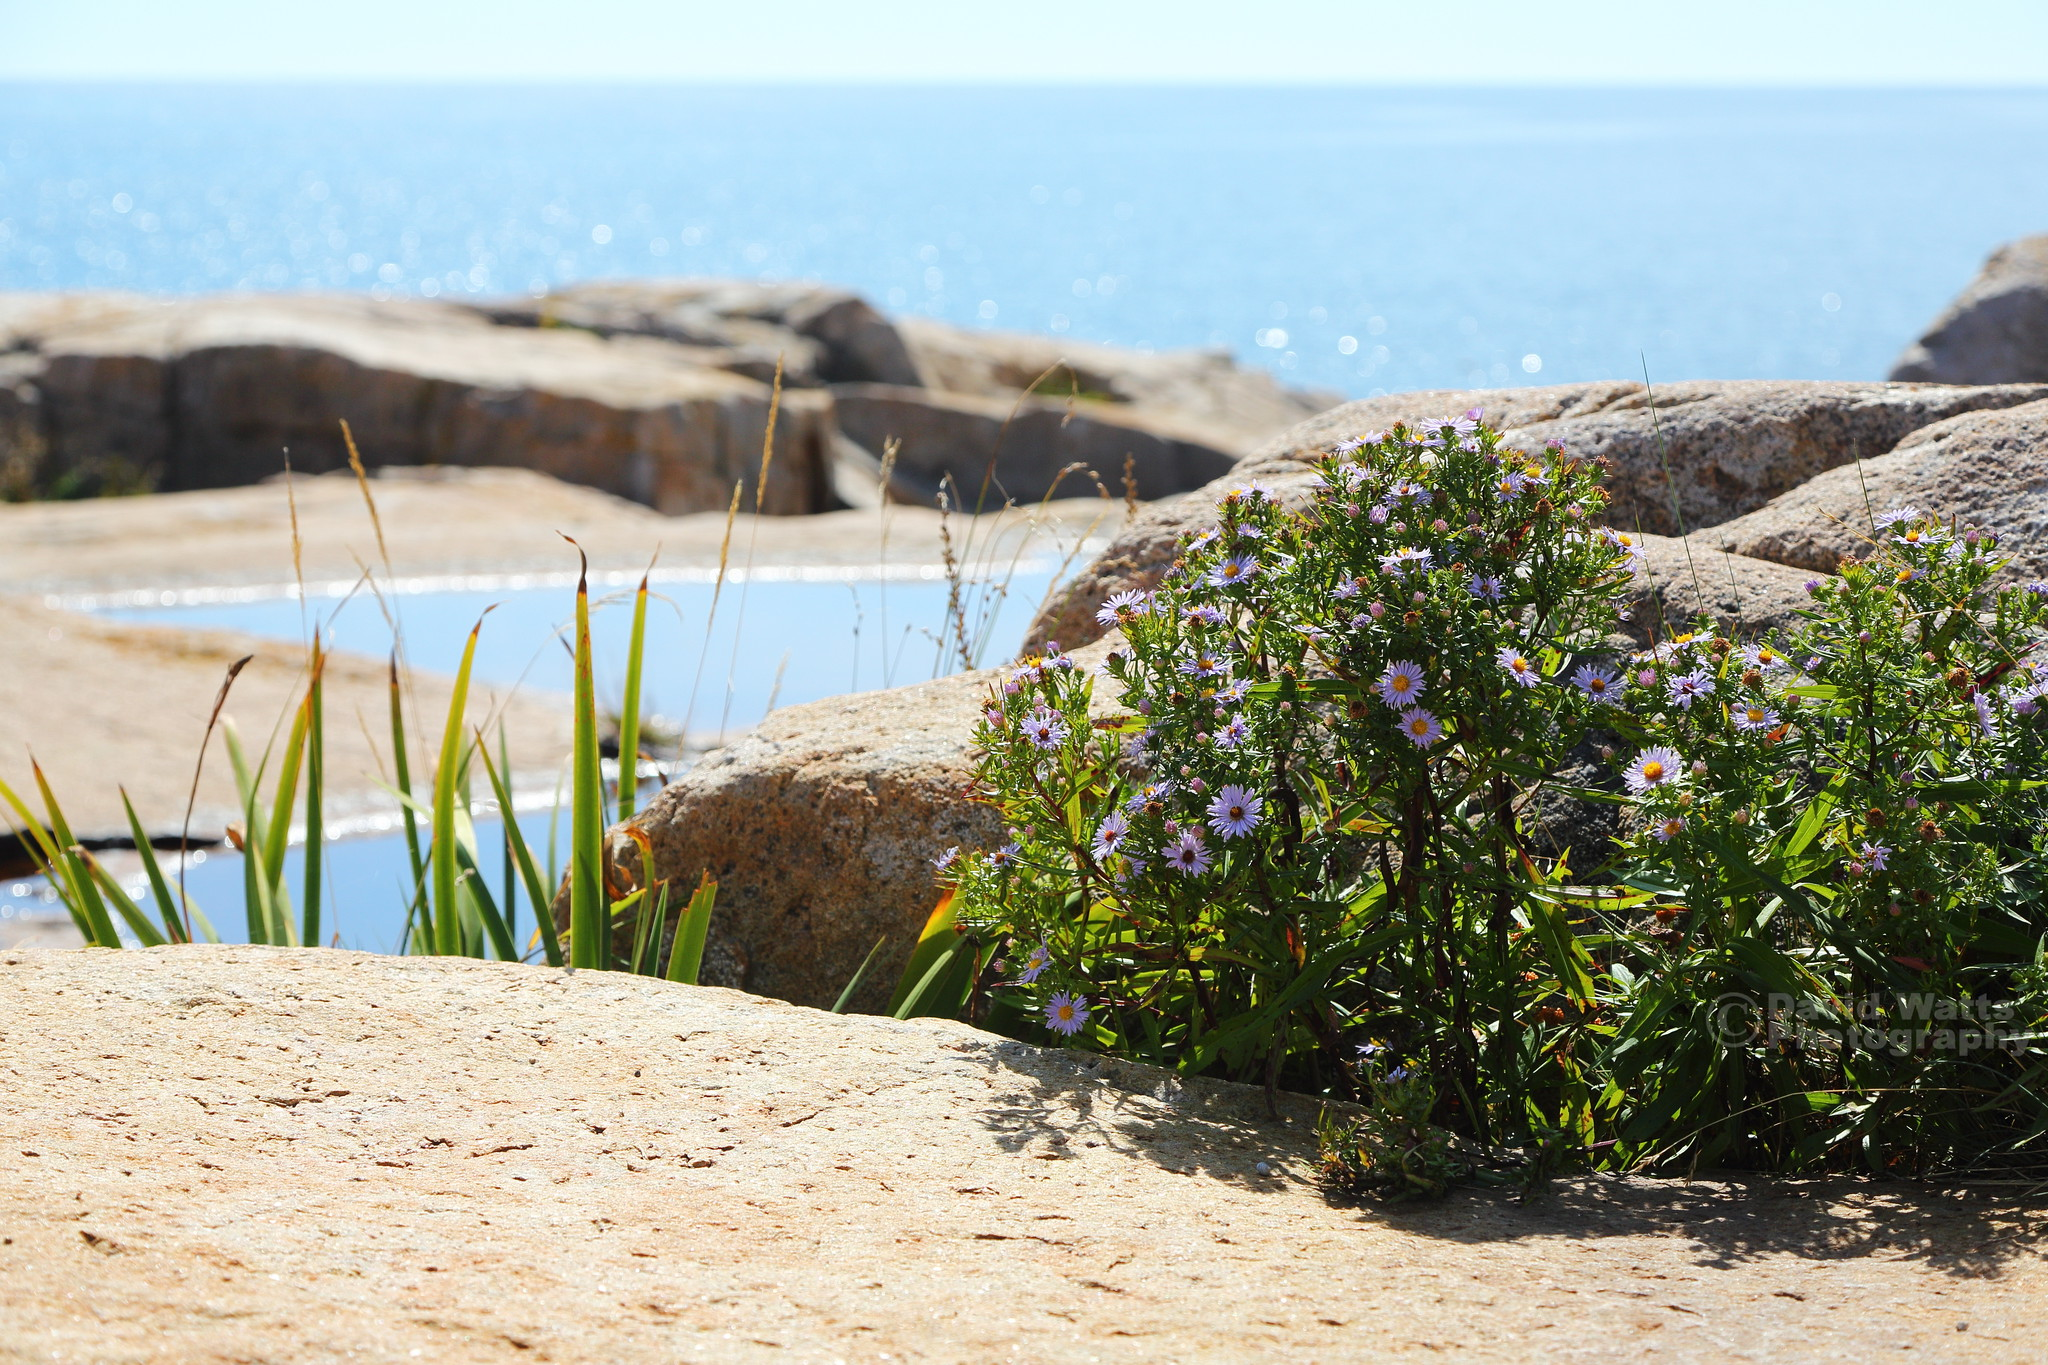 Bedrock and Flowers - Schoodic Point, Maine